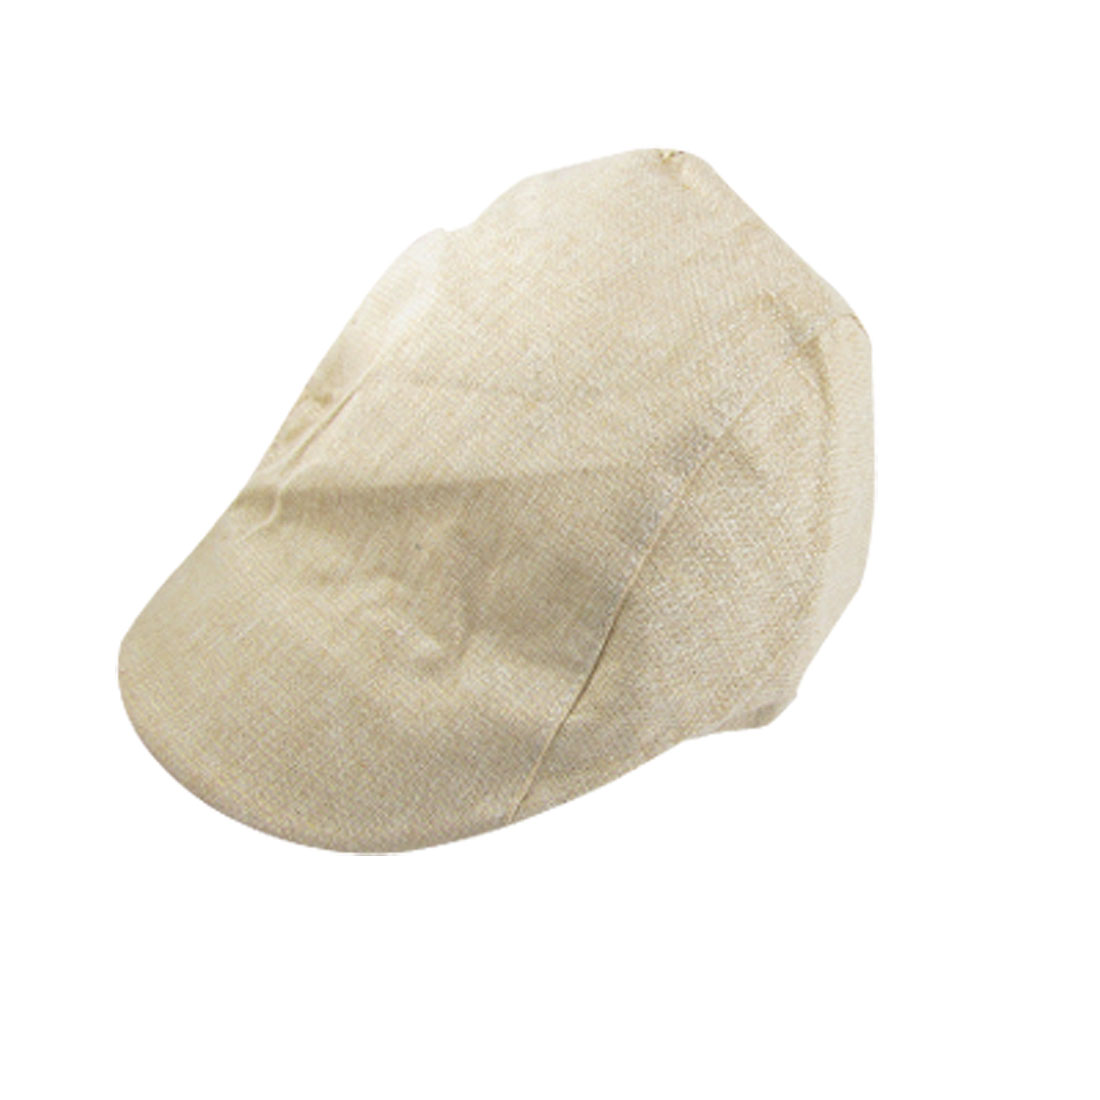 Ladies Gold Tone Metallic Thread Beige Beret Hat Cap